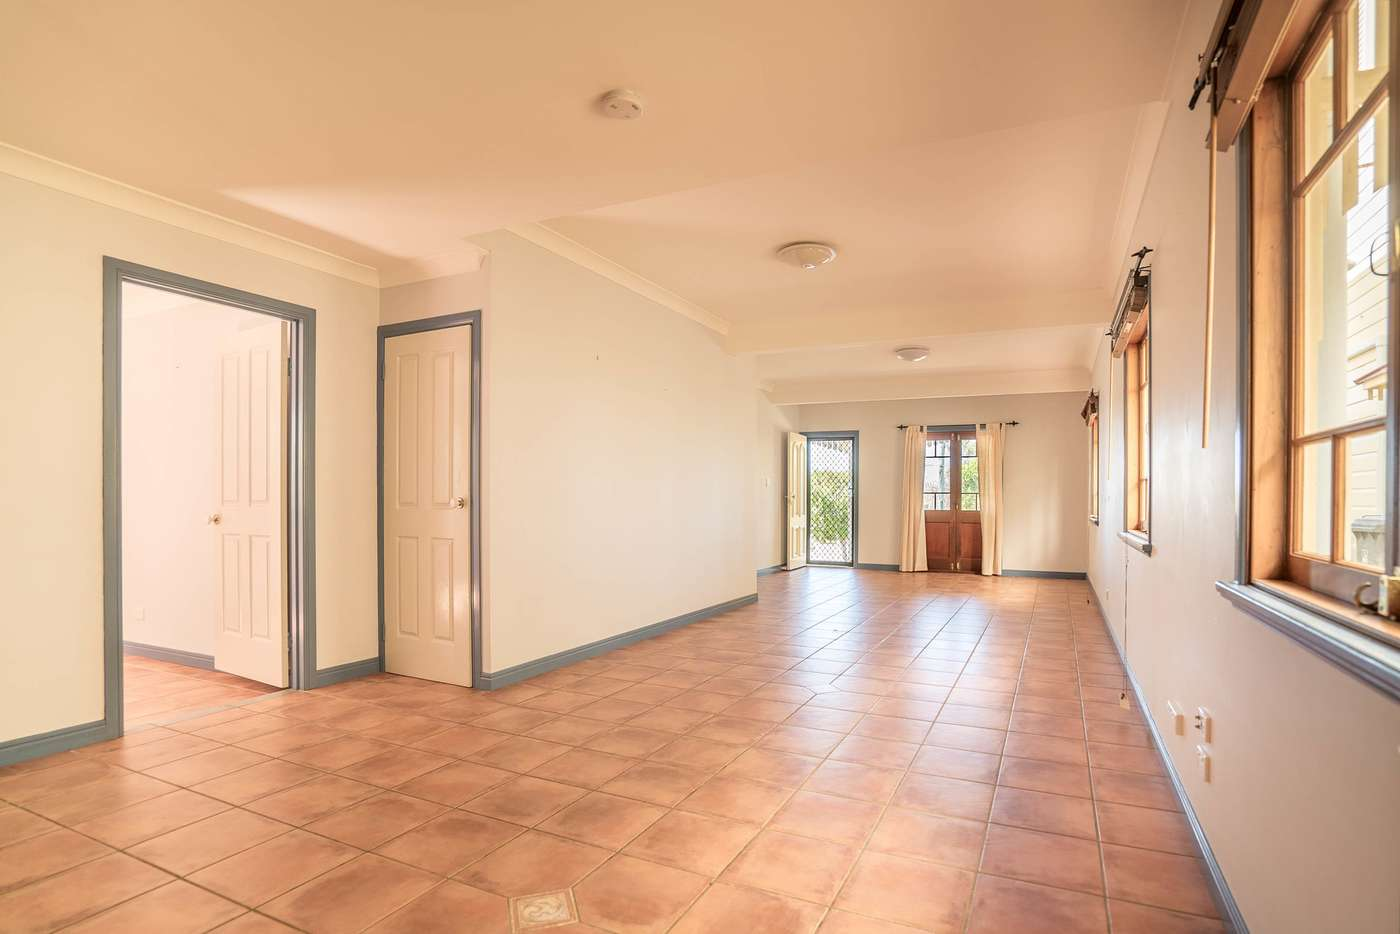 Sixth view of Homely house listing, 39 Beaconsfield Tce, Gordon Park QLD 4031